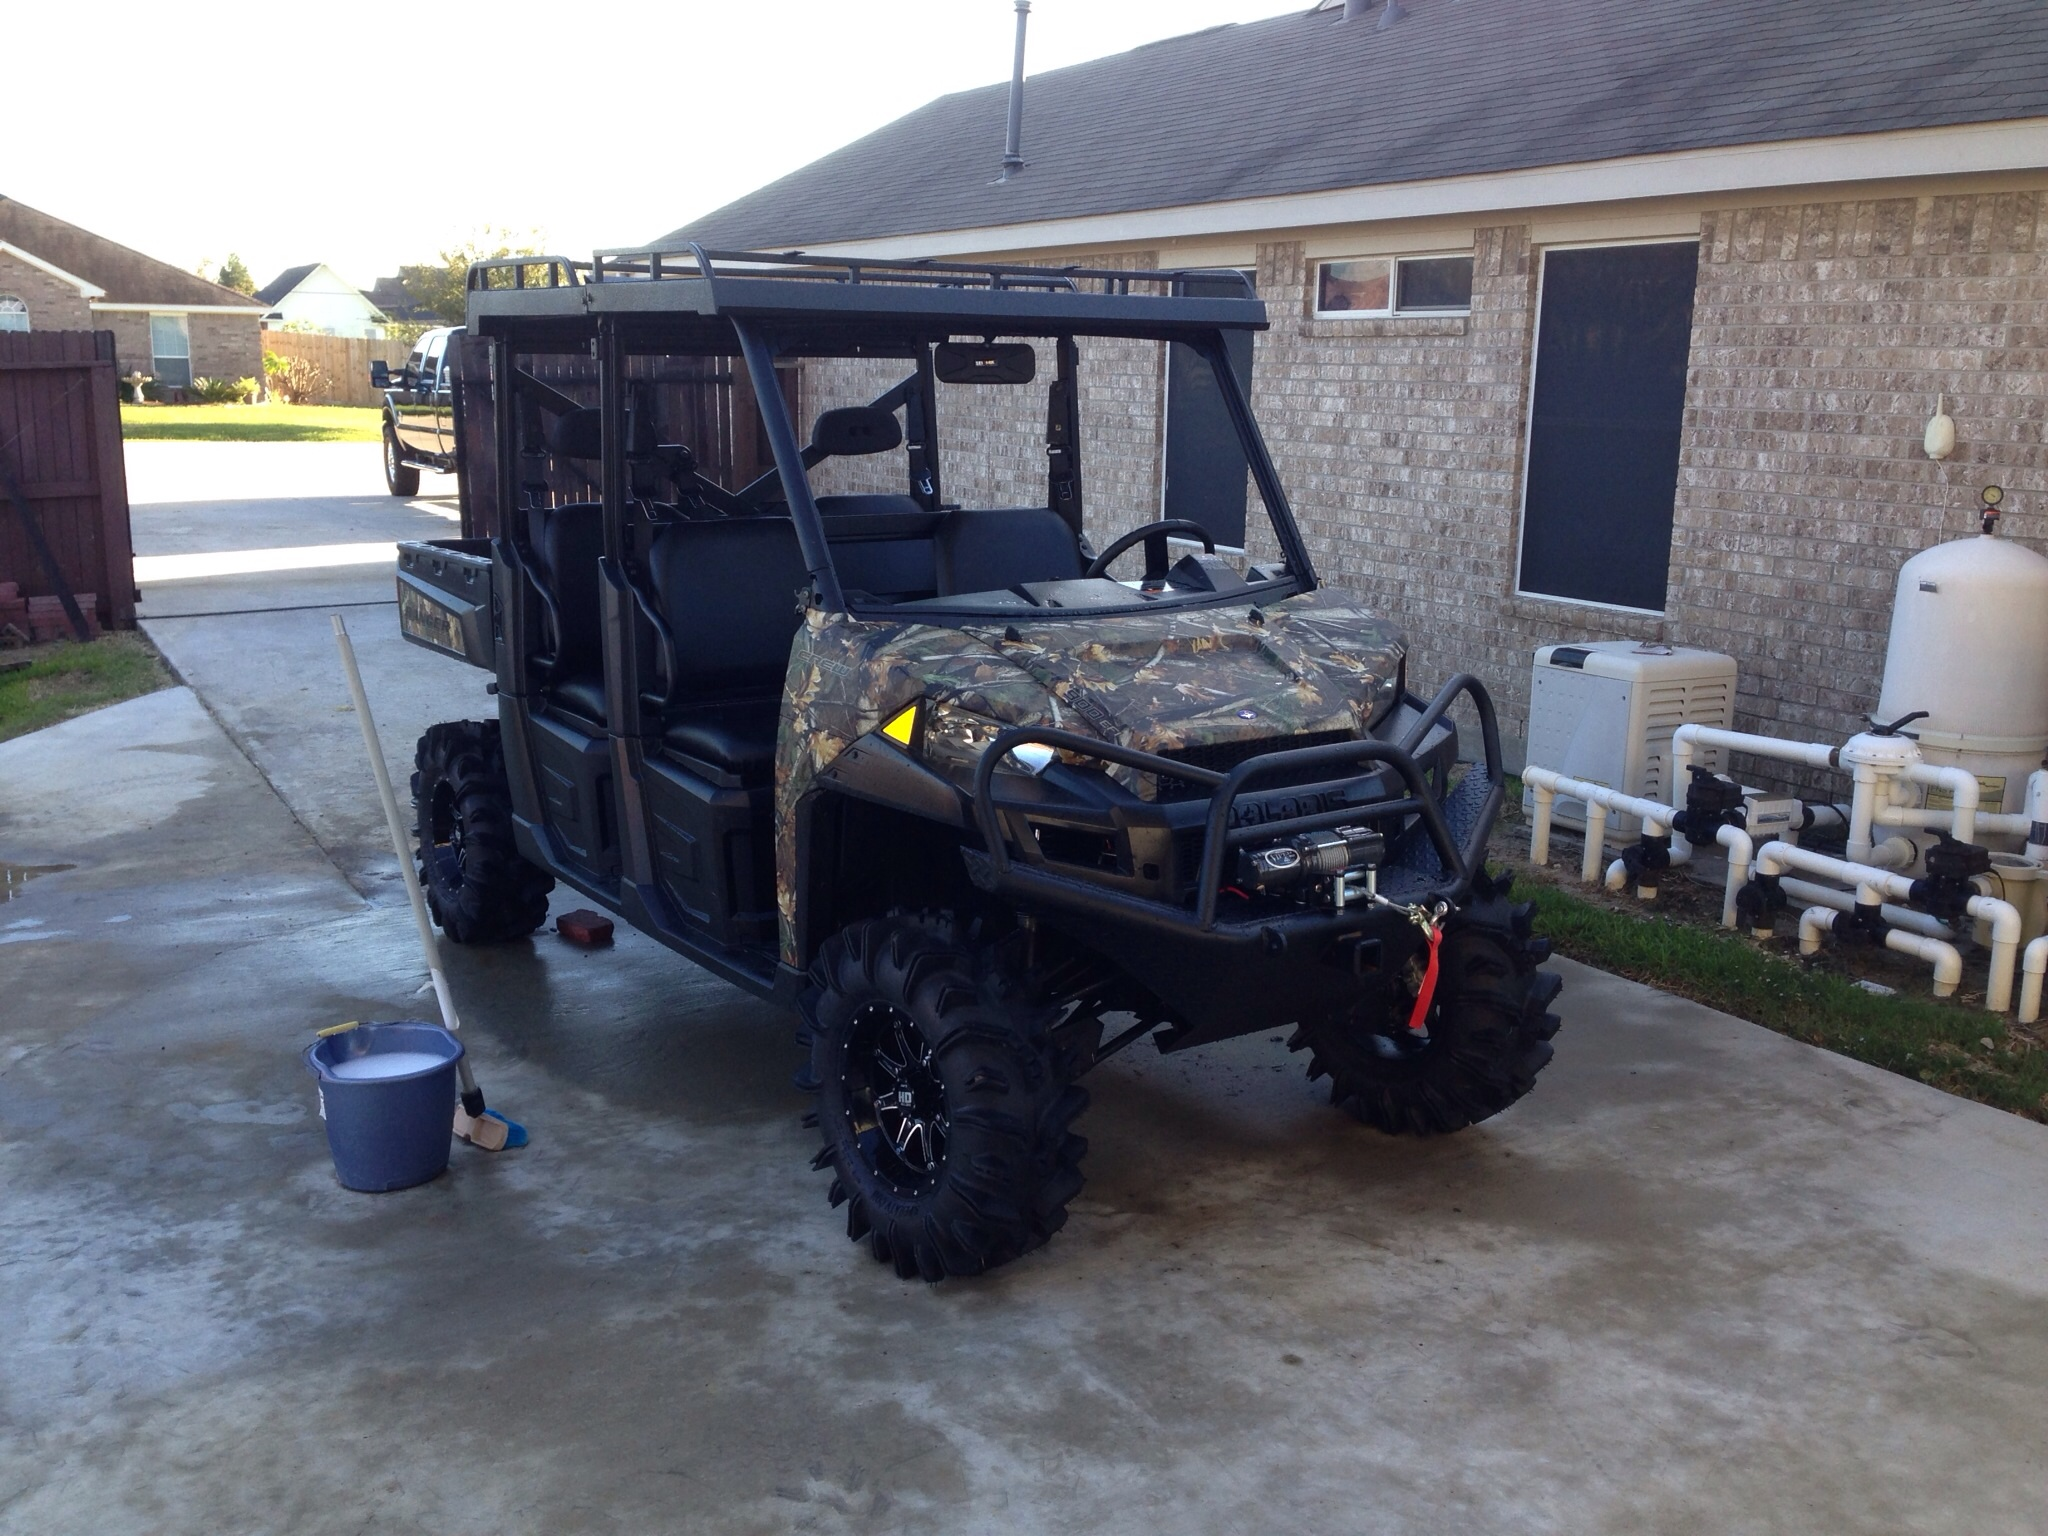 Polairis Ranger Xp For Sale 2014 | Autos Weblog